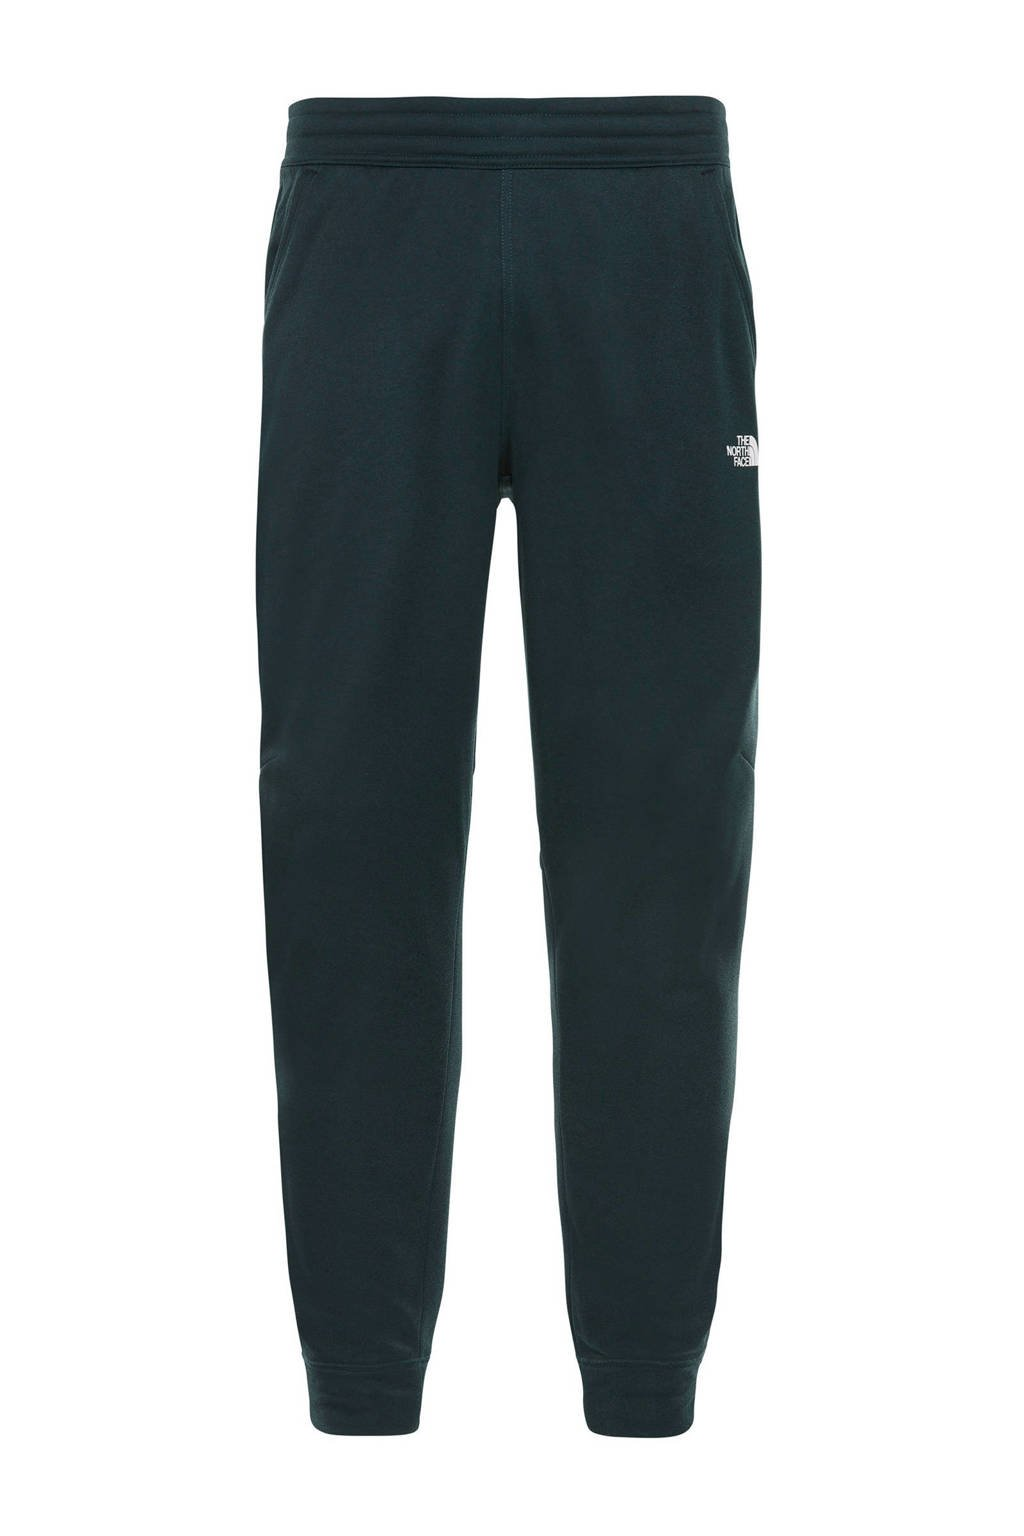 The North Face joggingbroek donkergroen, Ponderosa-green-heather